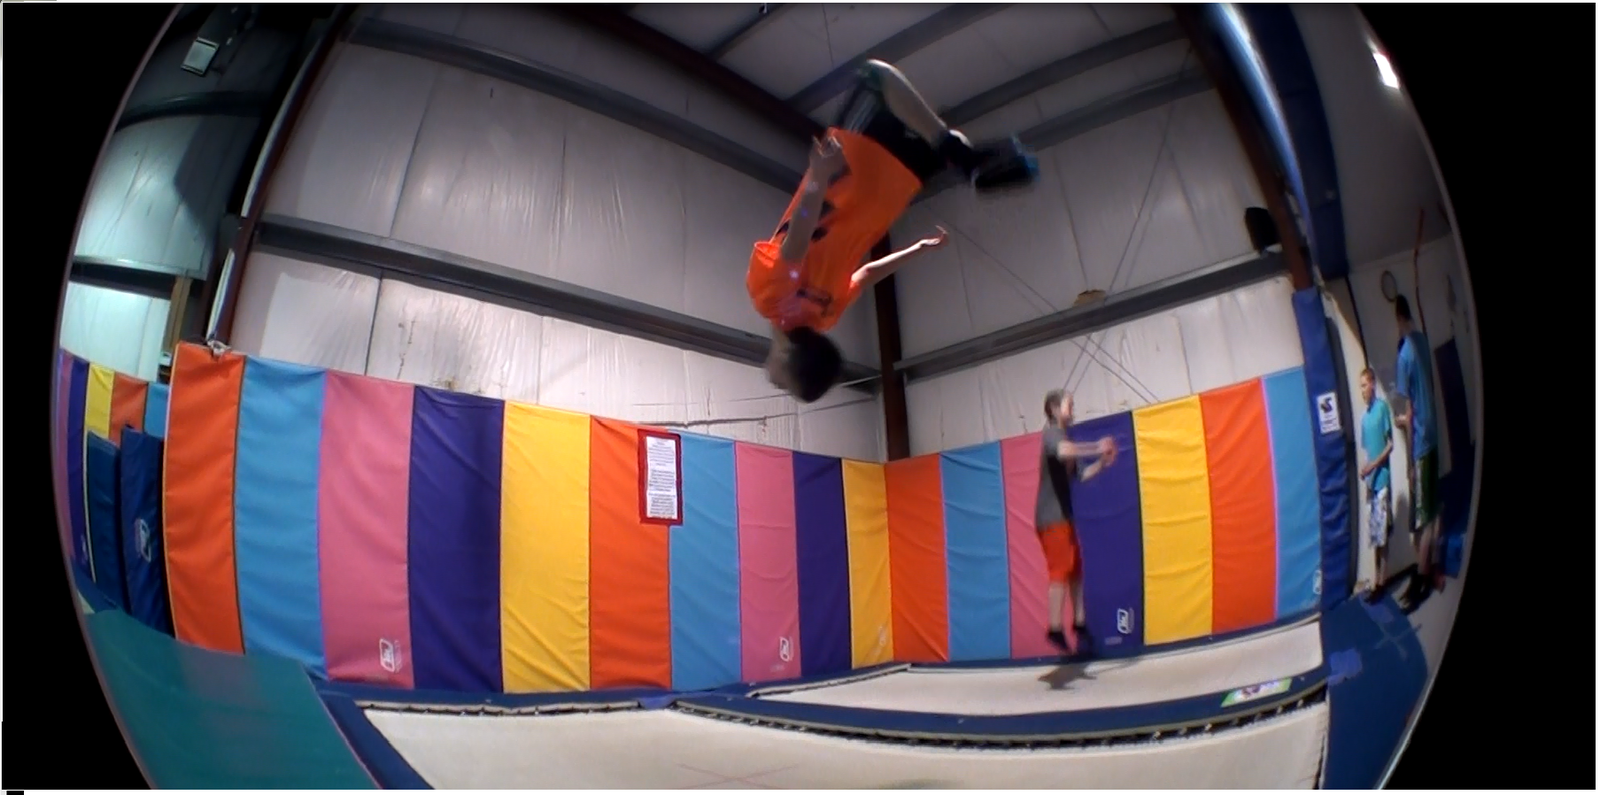 My laid out backflip